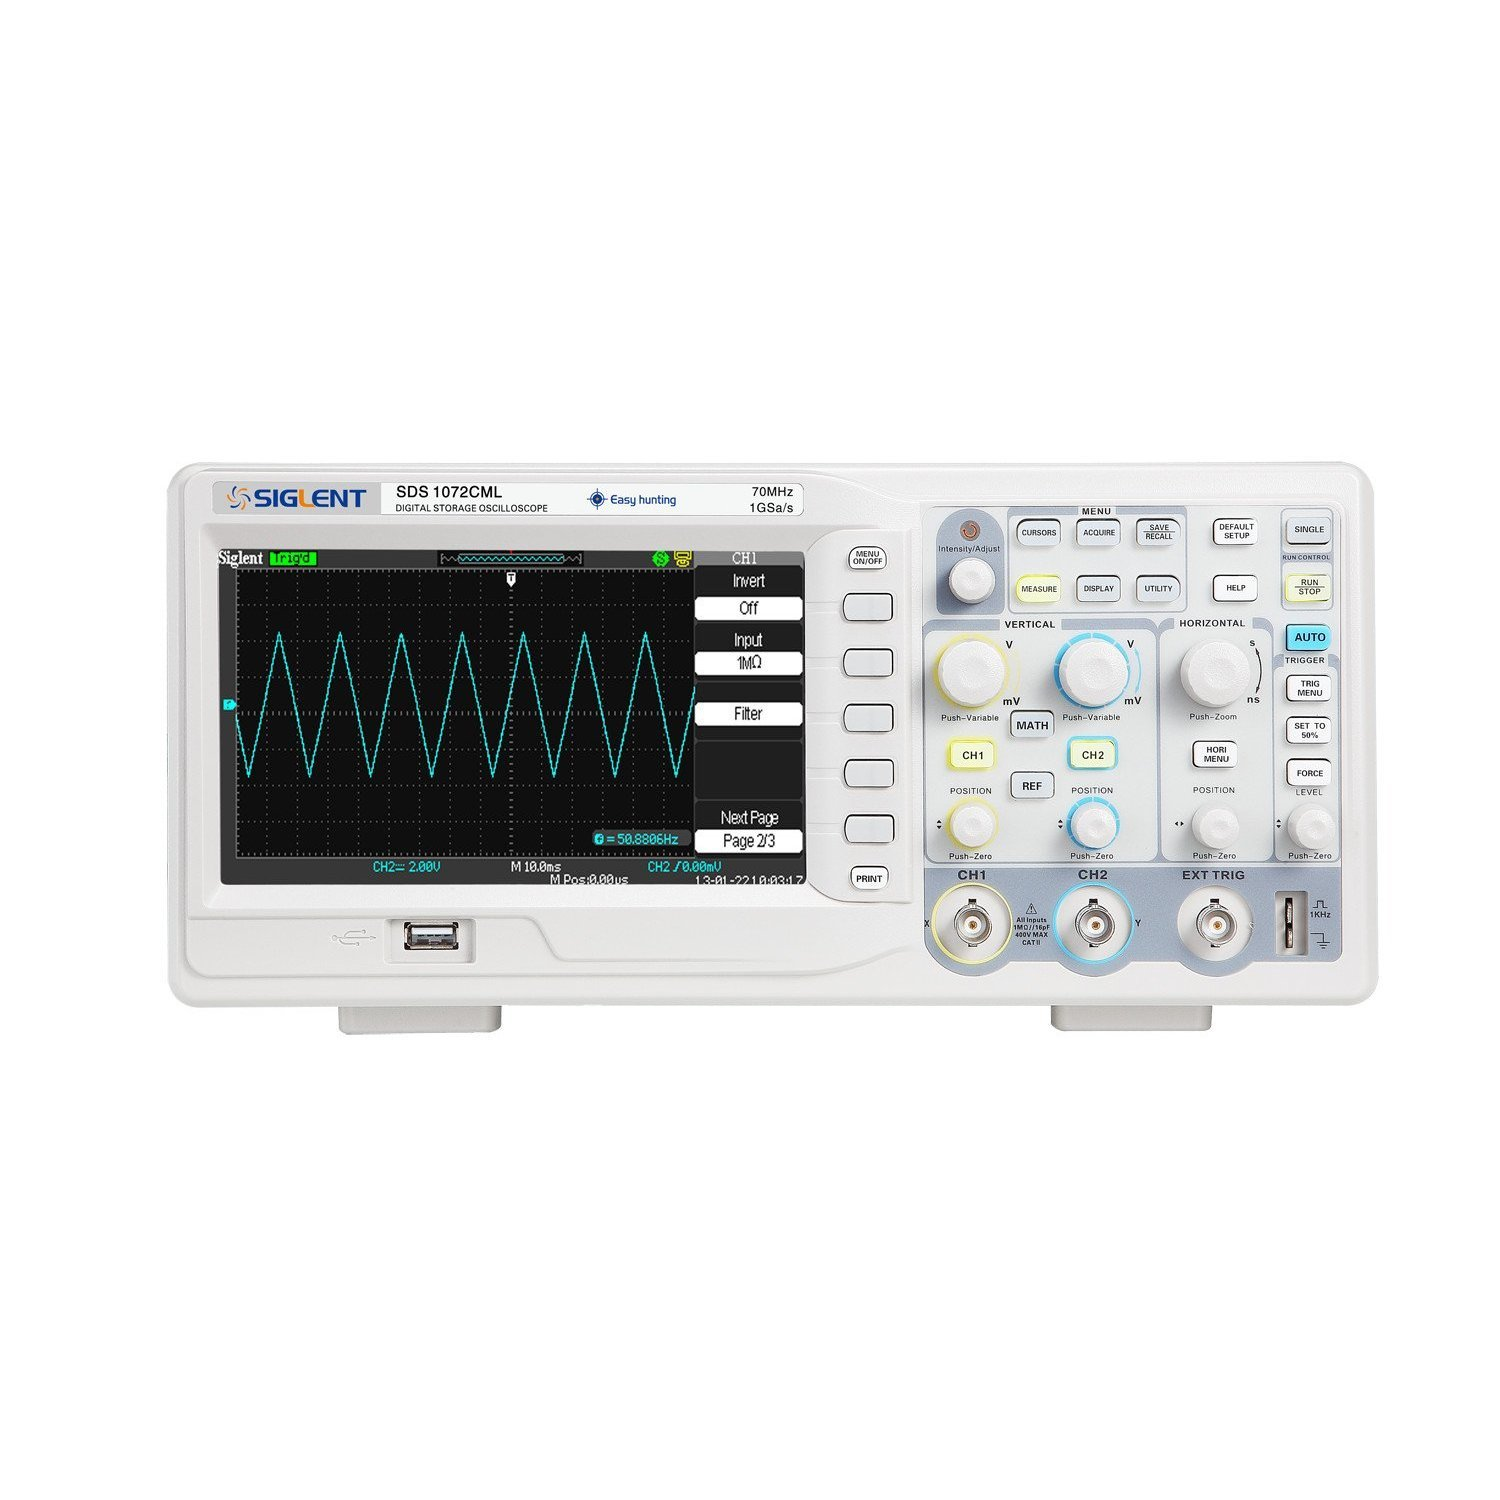 Siglent SDS1072CML 7'' TFT-LCD Display Bench-Top Oscilloscope, 70MHz product image